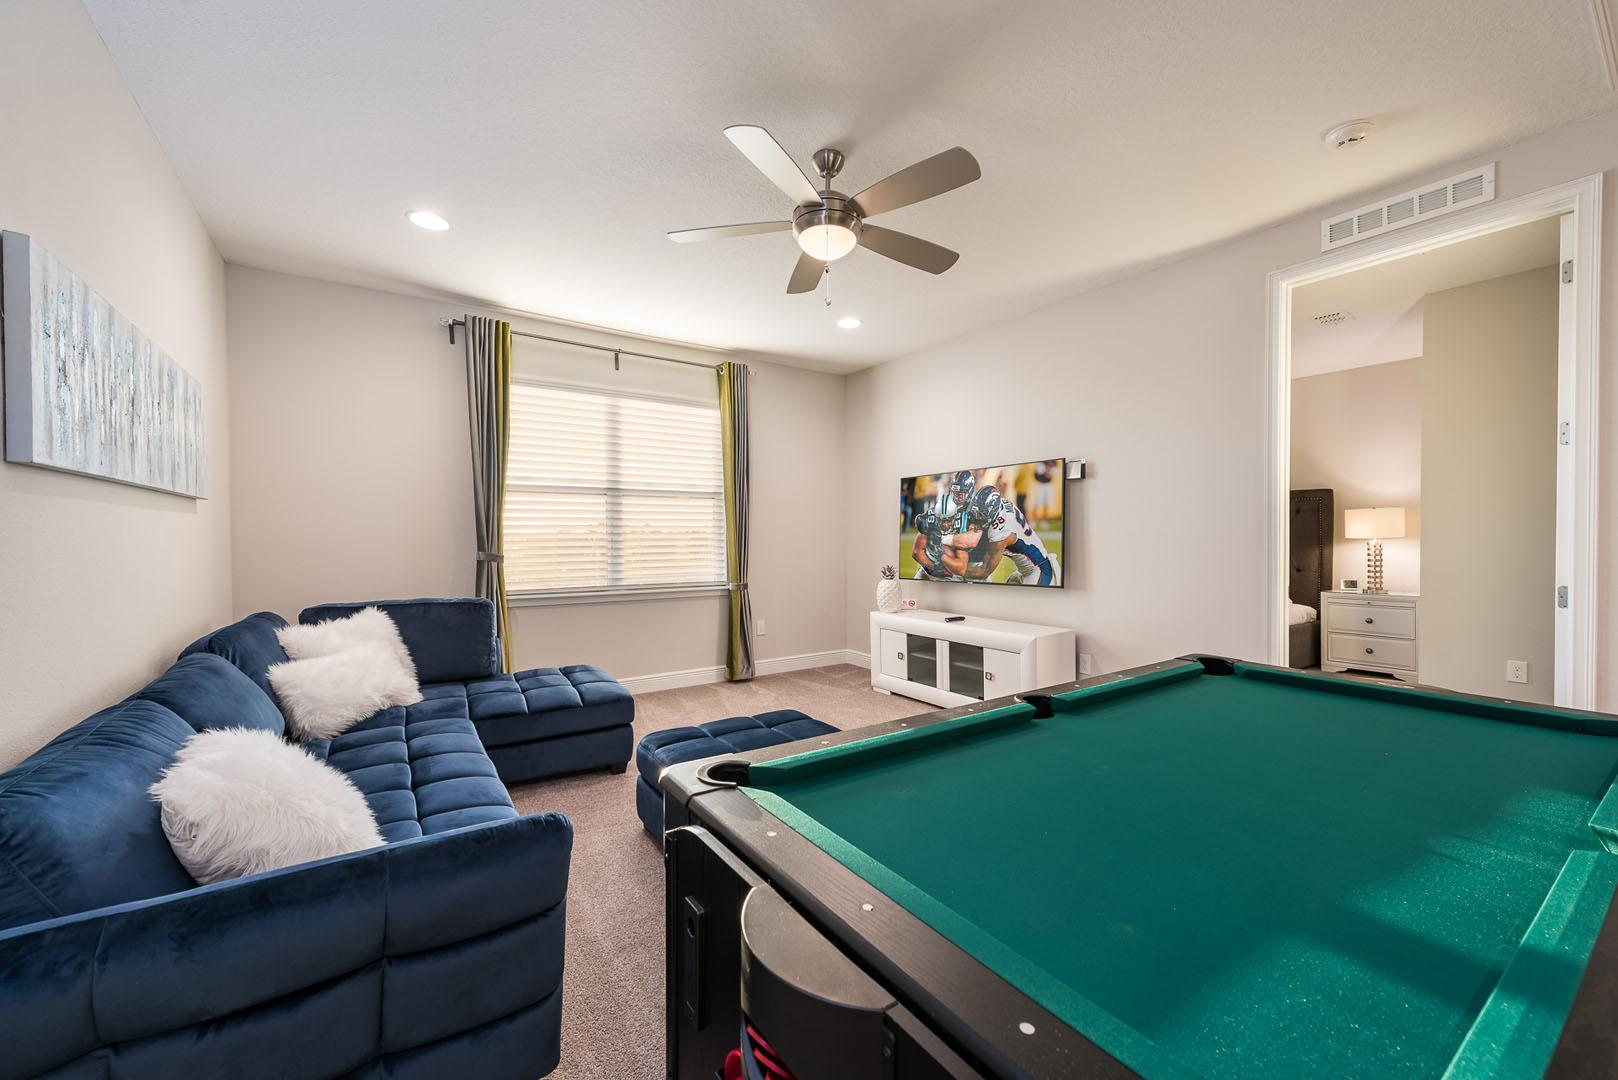 Property Image 1 - Luminous Home with Pool & Hockey Table near Disney